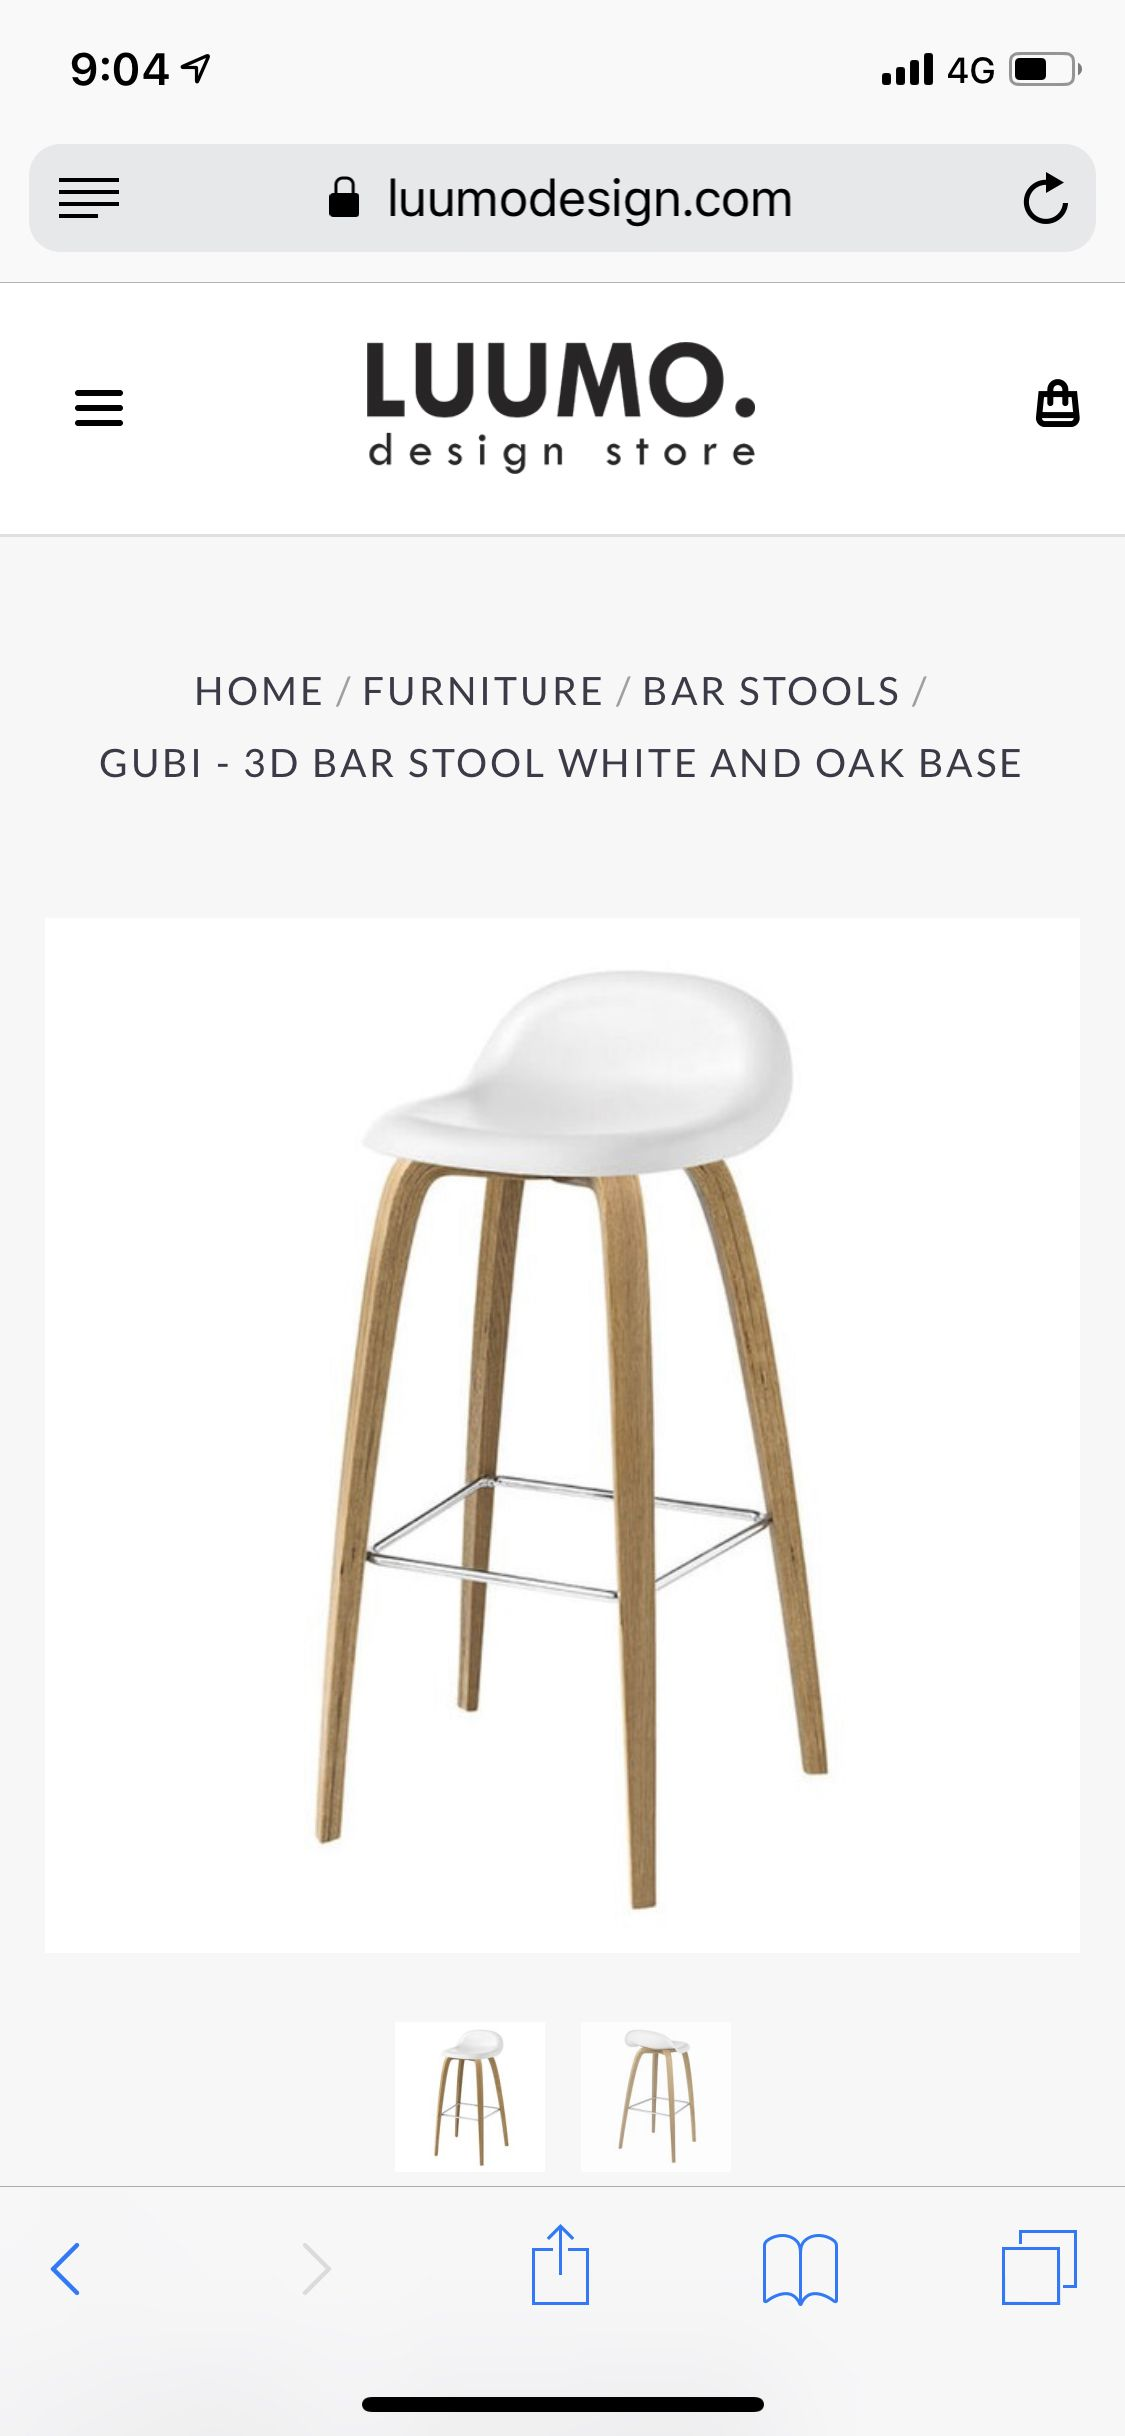 Pin By Claire On Kitchen With Images Bar Stools Design Store Home Furniture